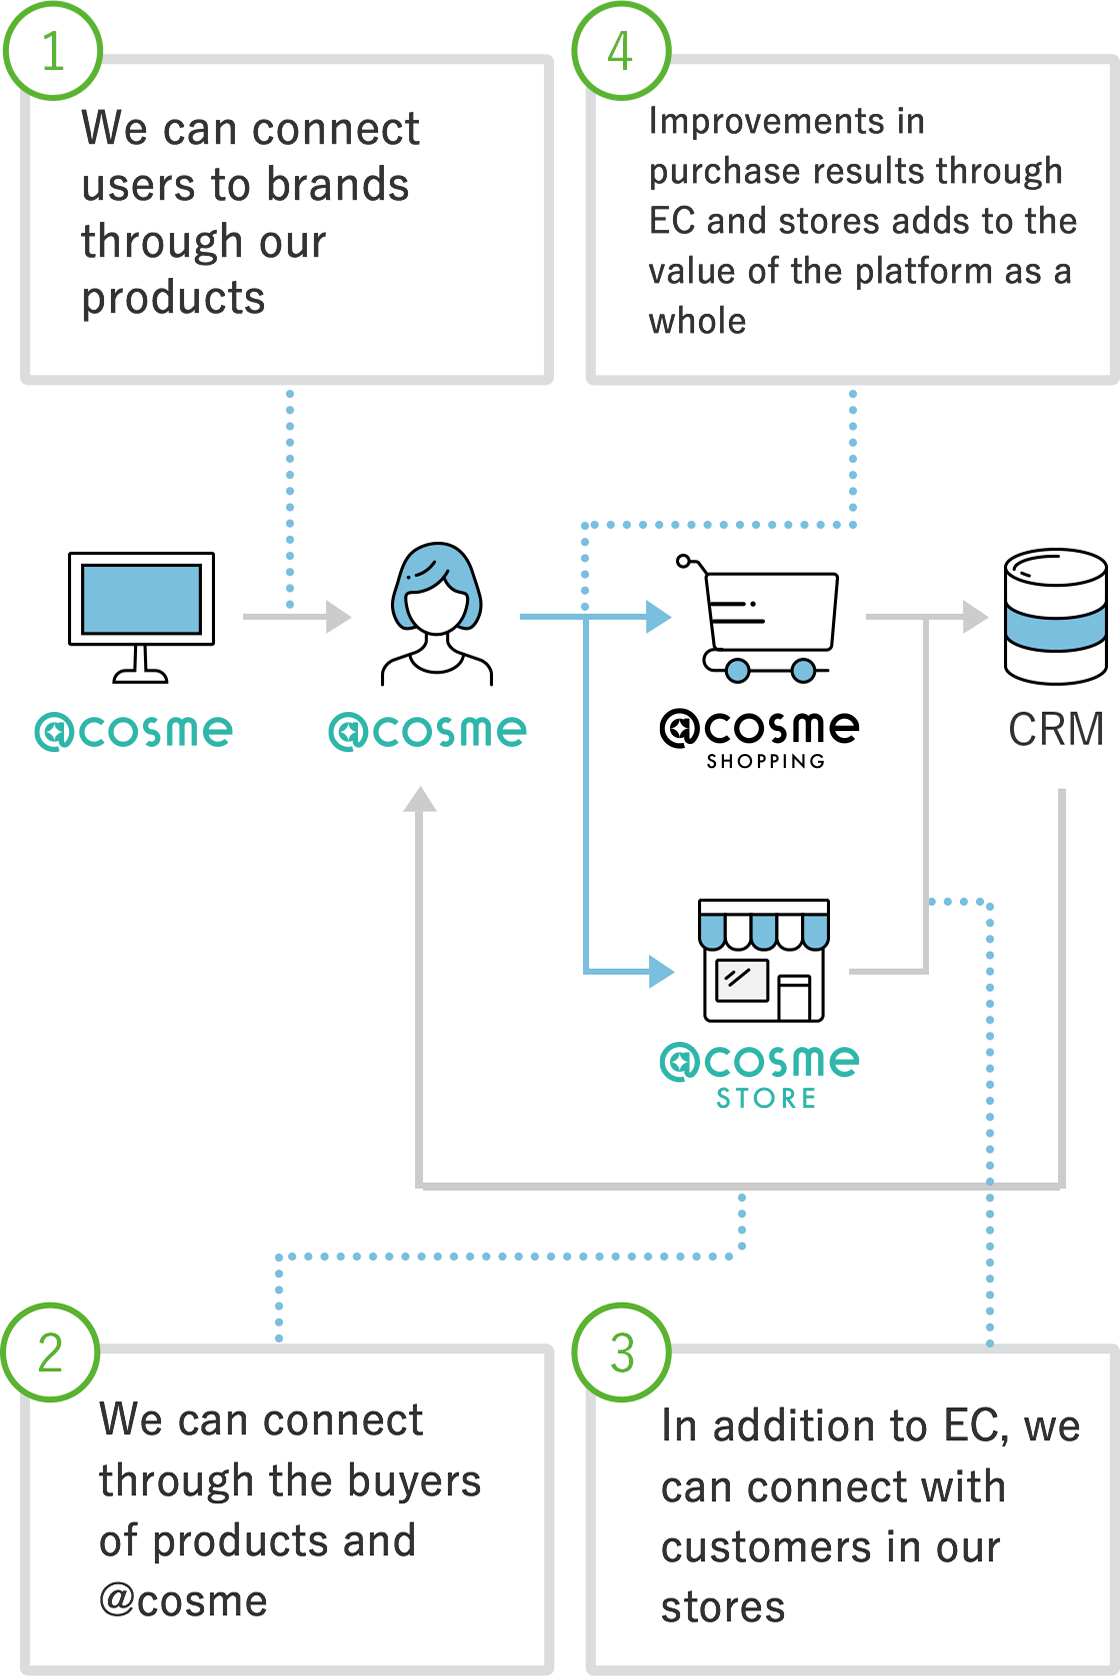 figure:①Connecting between users and brands based on products ②Connecting through customers and @cosme ③Connecting customers in stores in addtion to EC ④Improving value of whole platforms by growing sales result of EC and stores